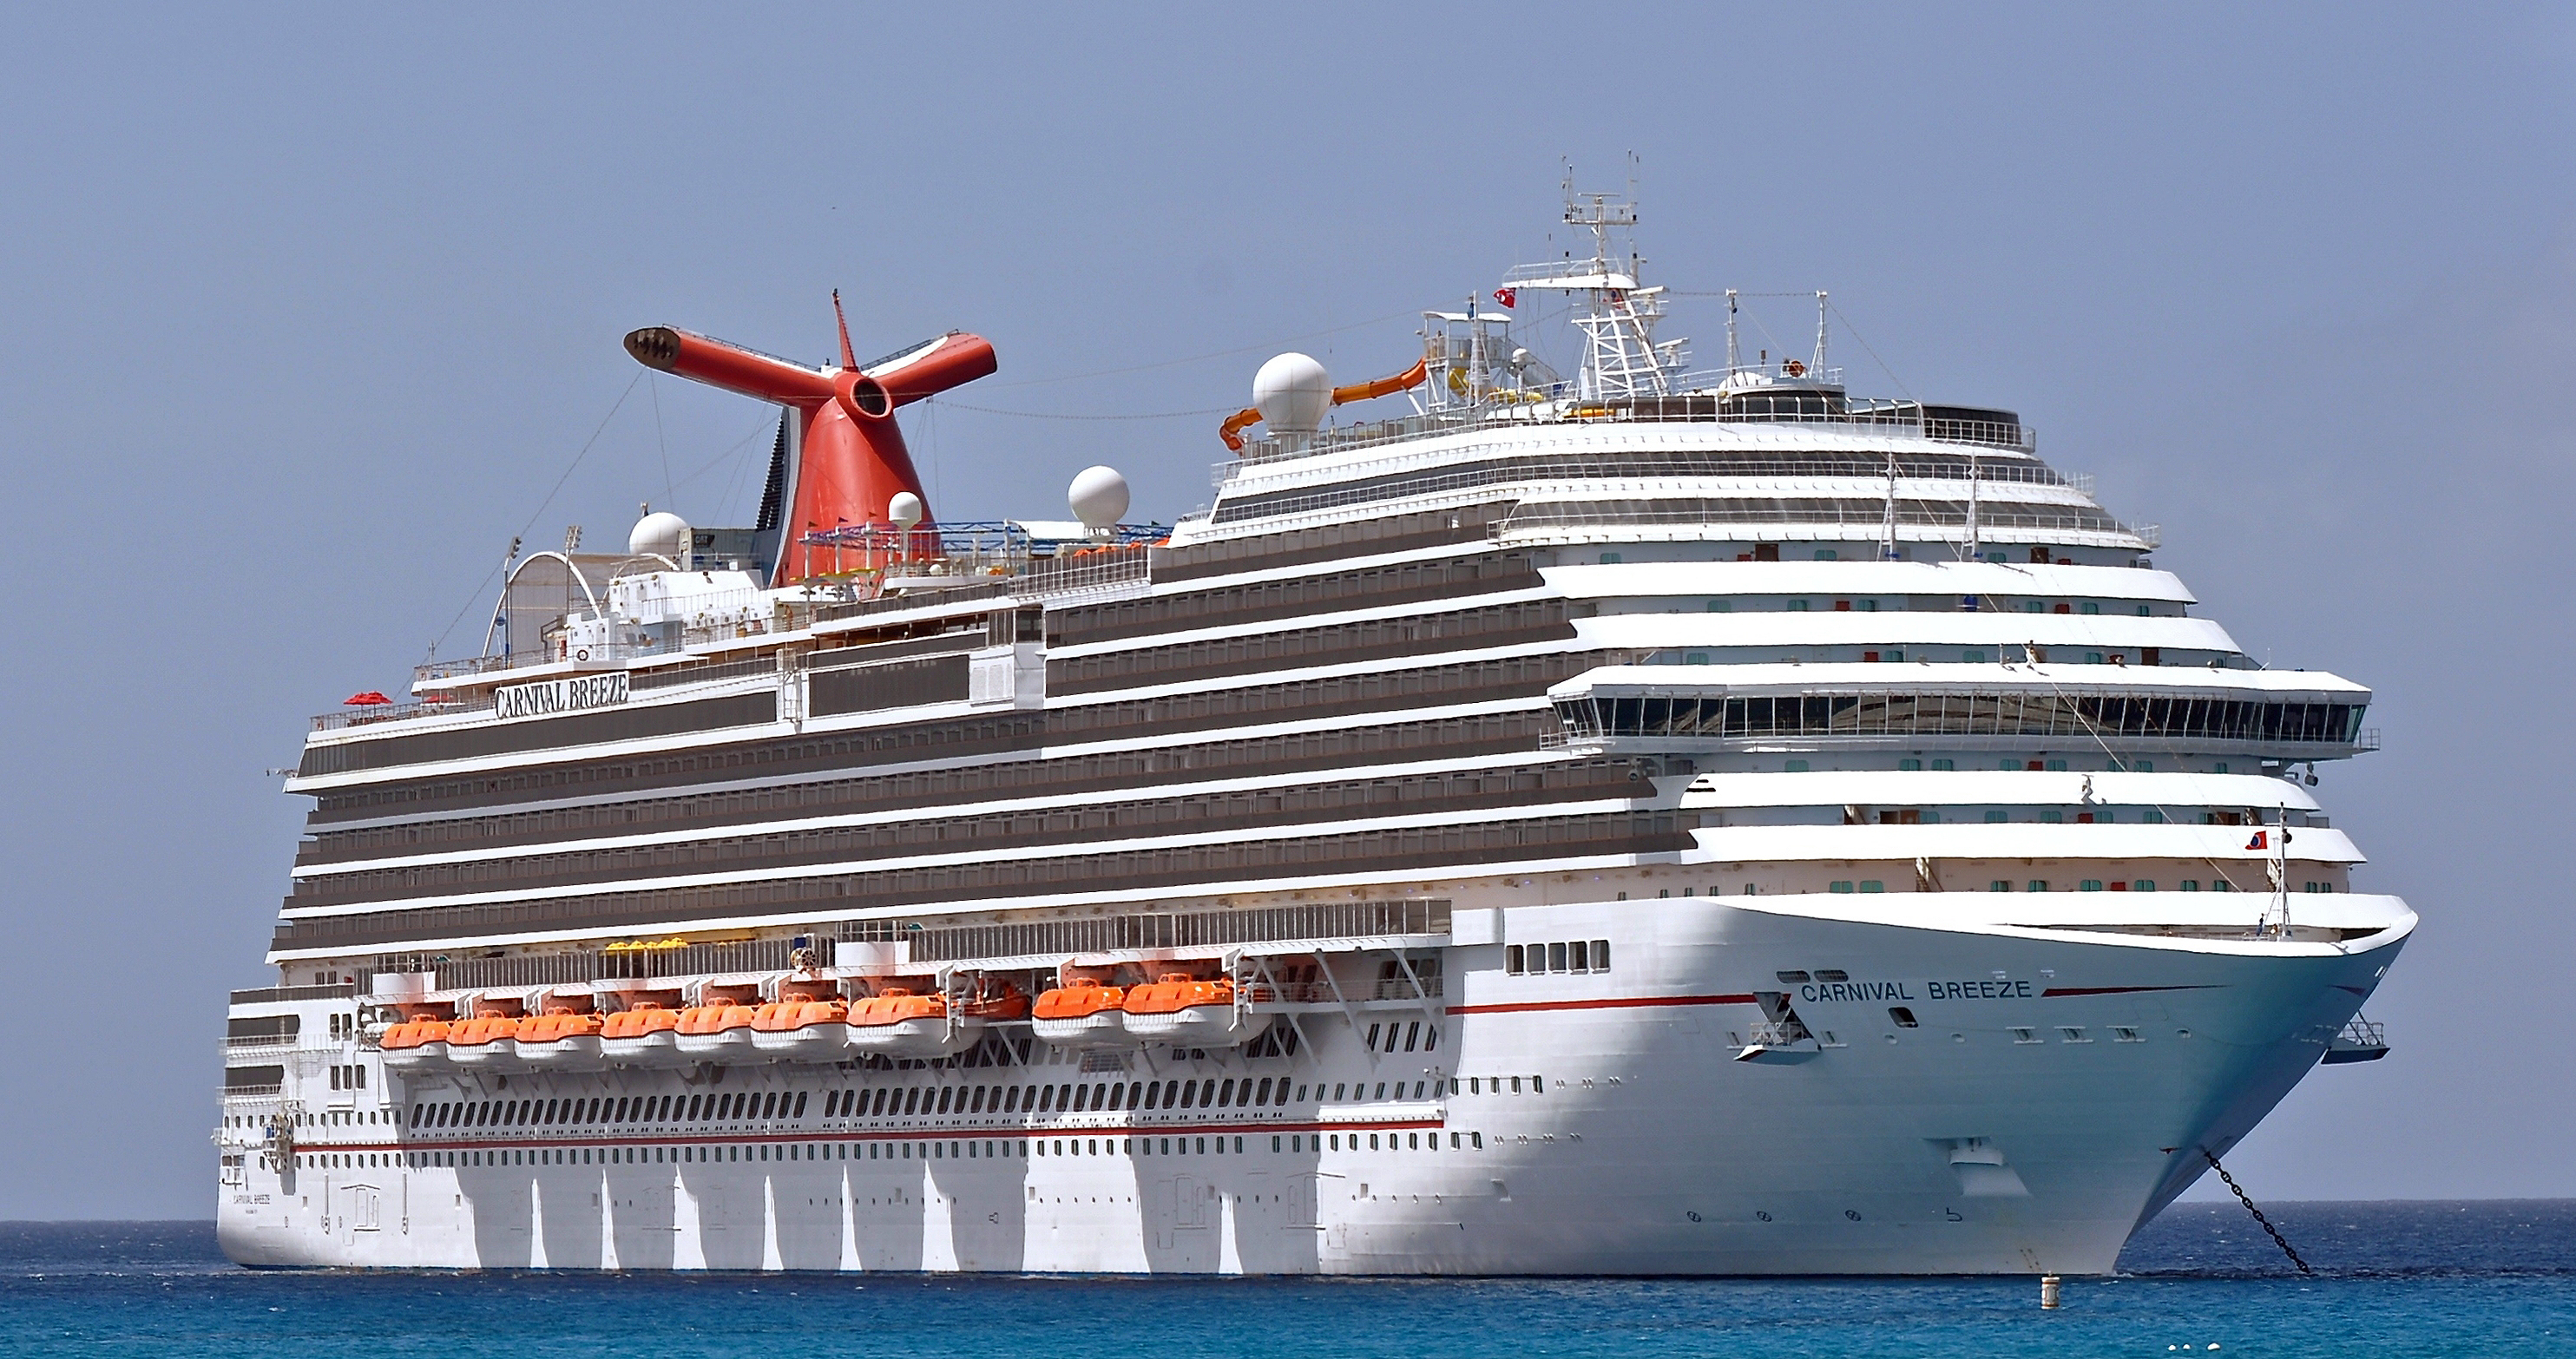 Download Cruise Ship Carnival Breeze Images